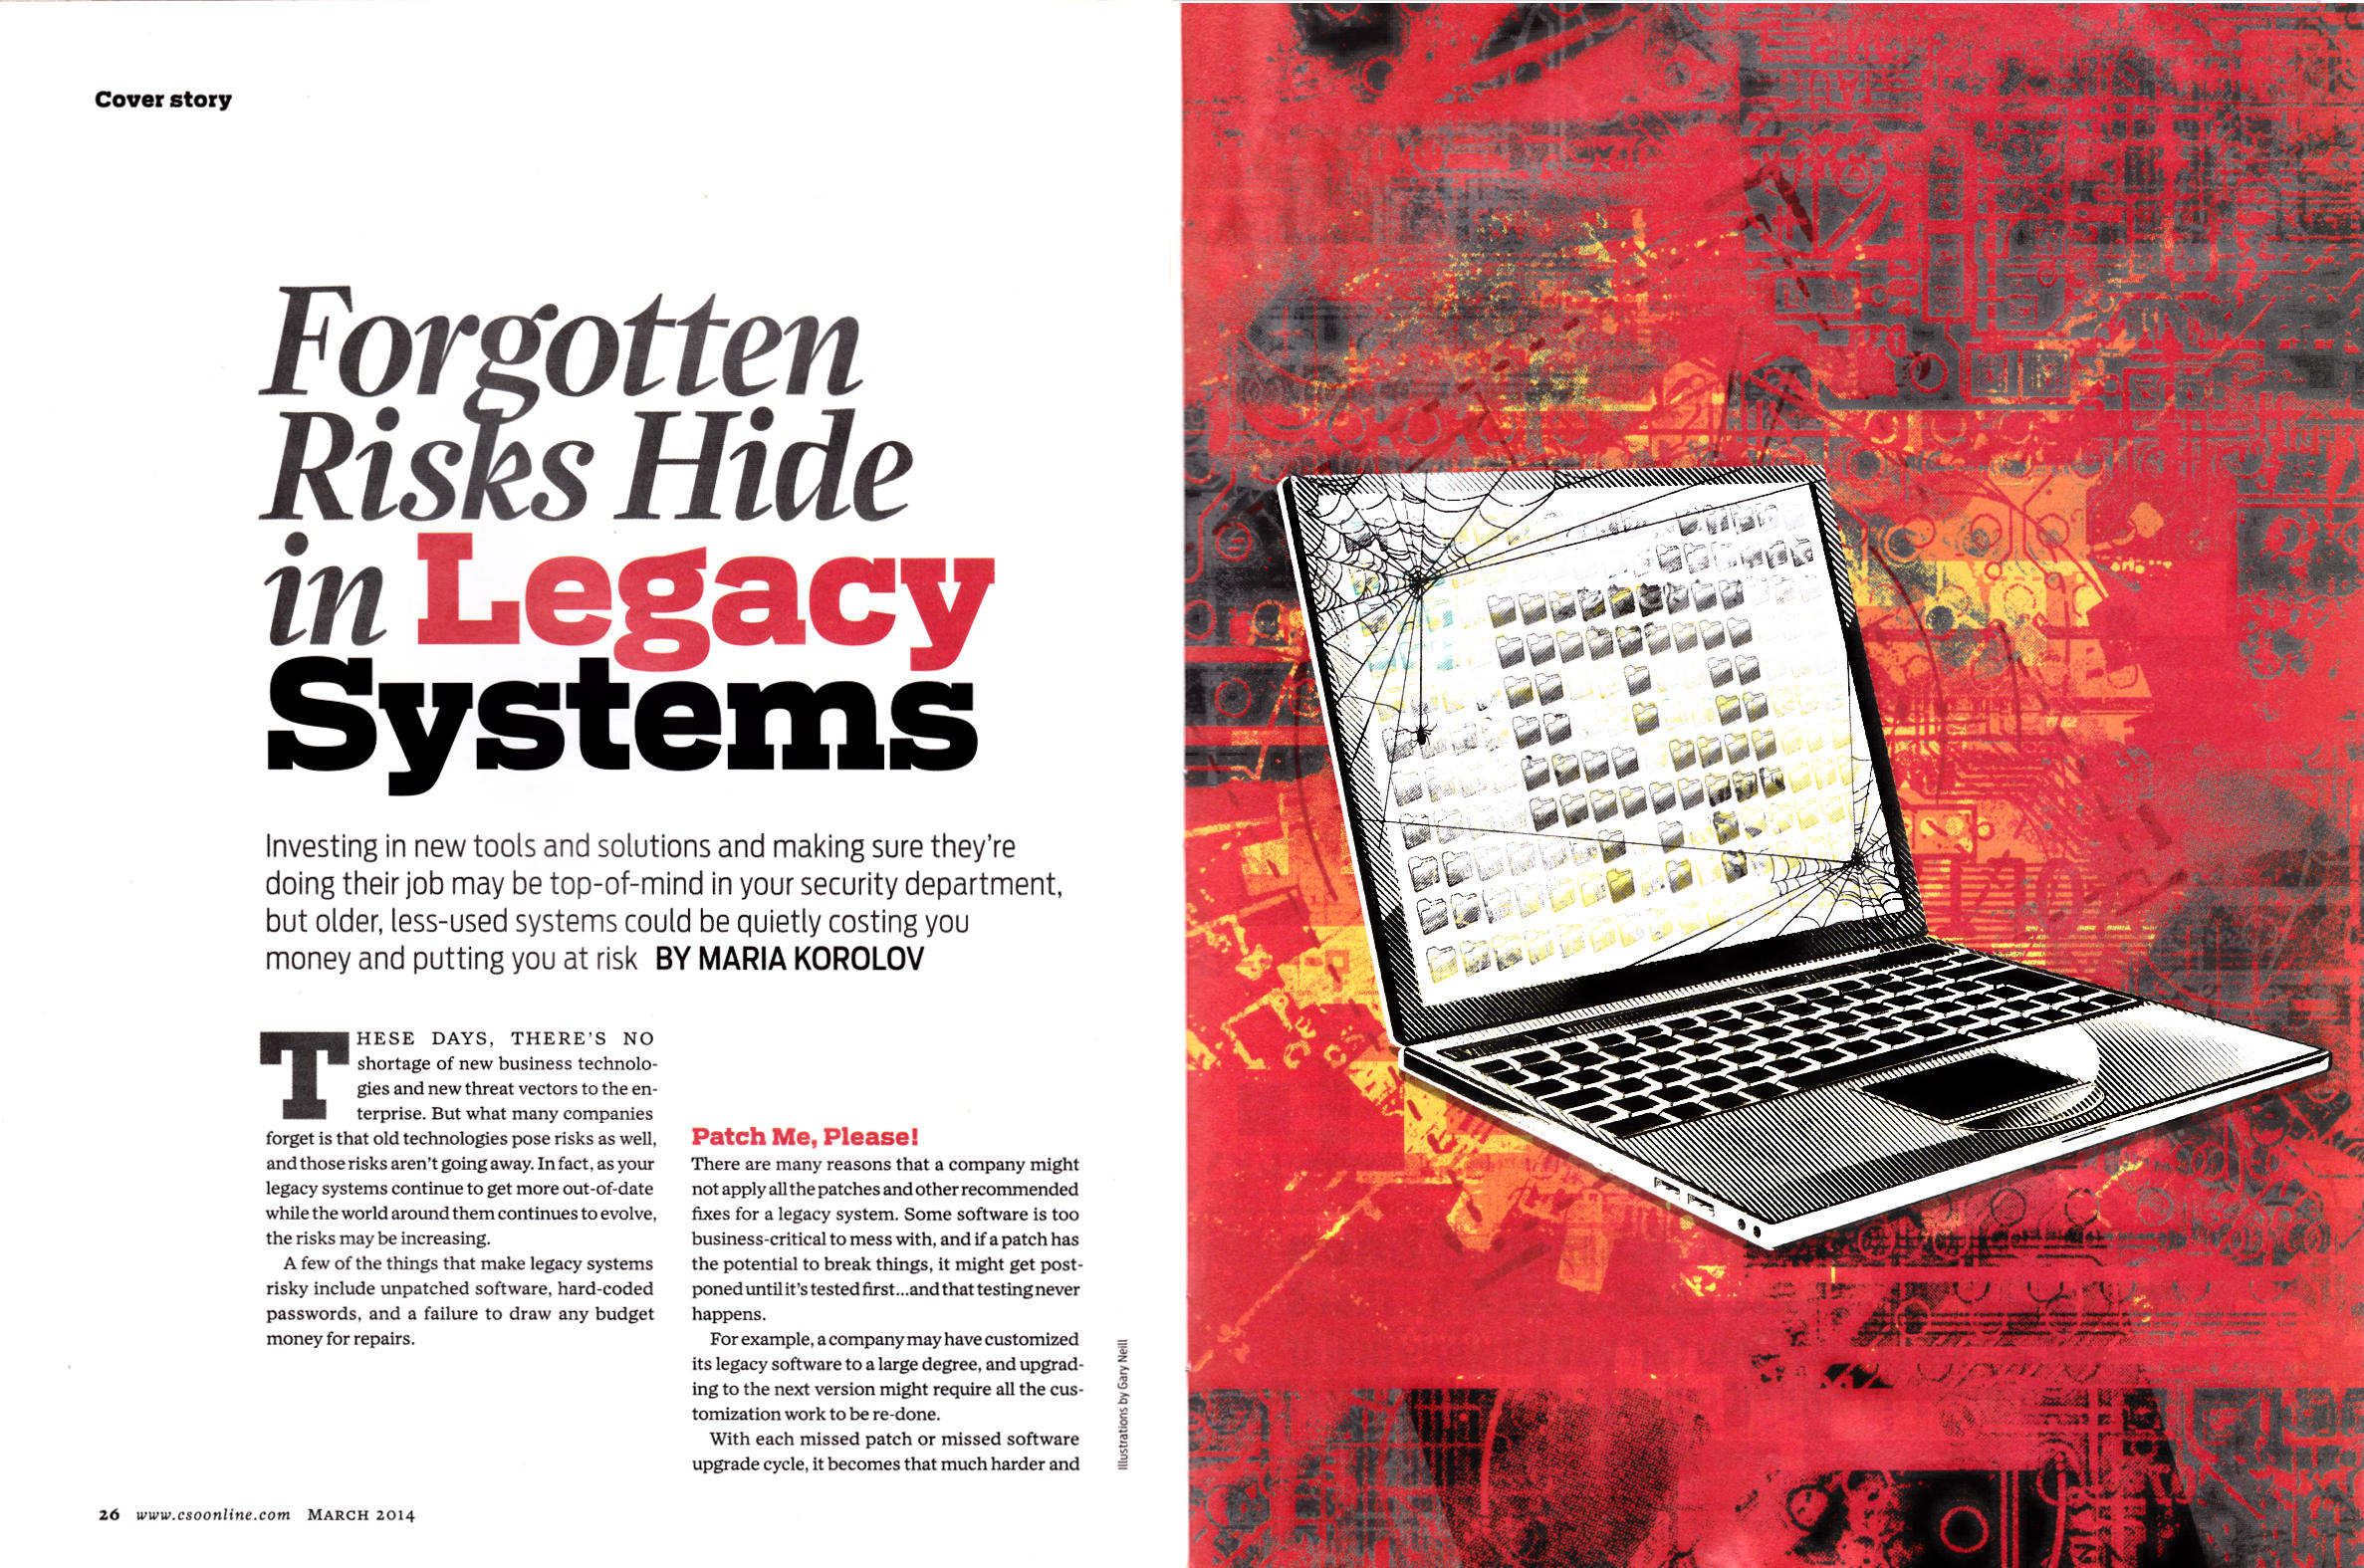 Forgotten risks hide in legacy systems